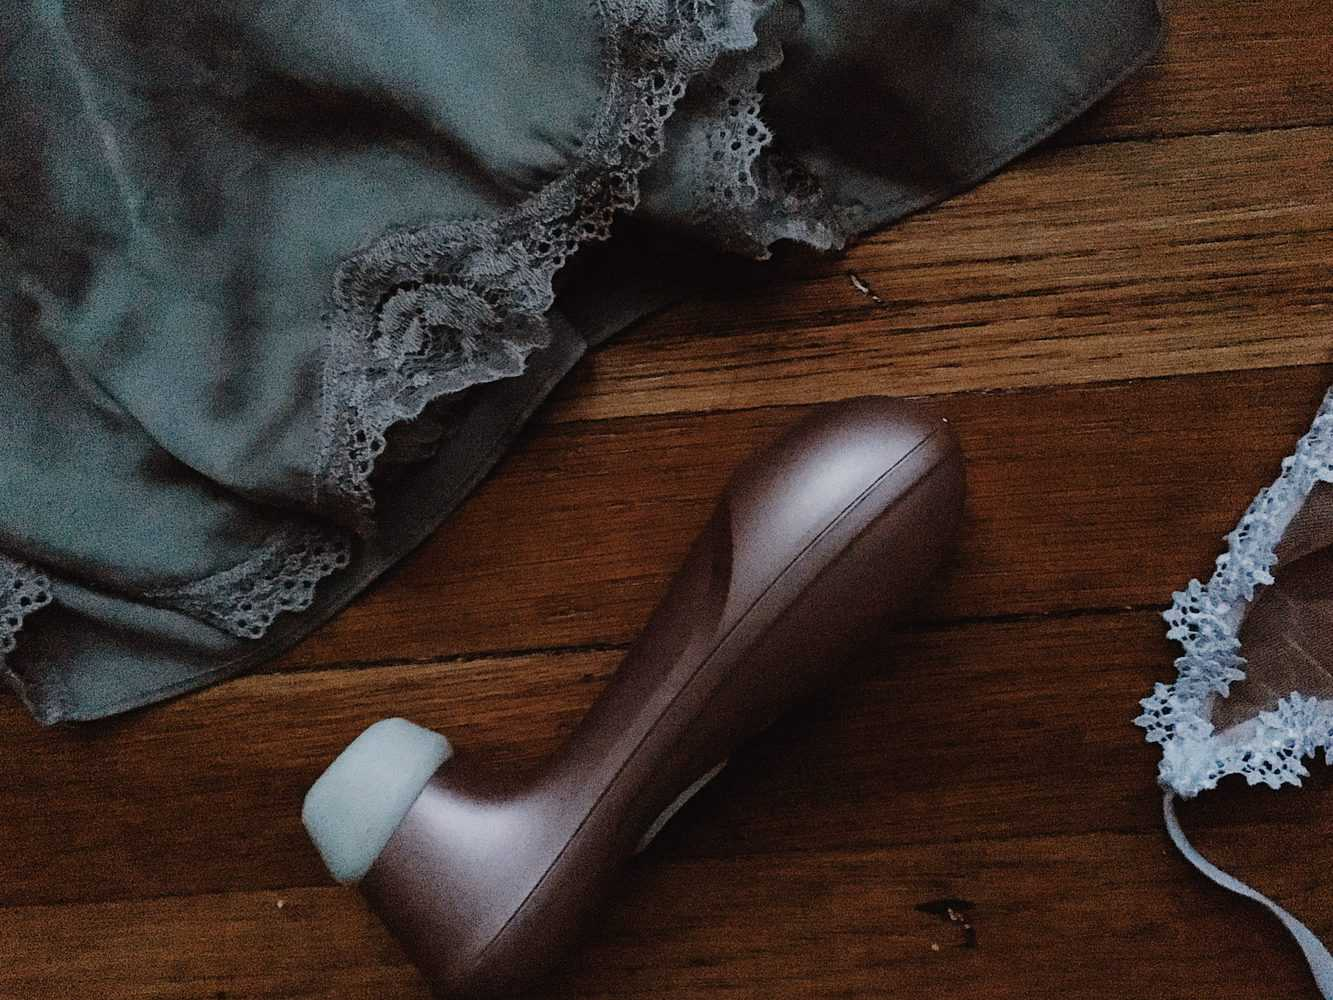 Floorscape with Vibrator and Lace